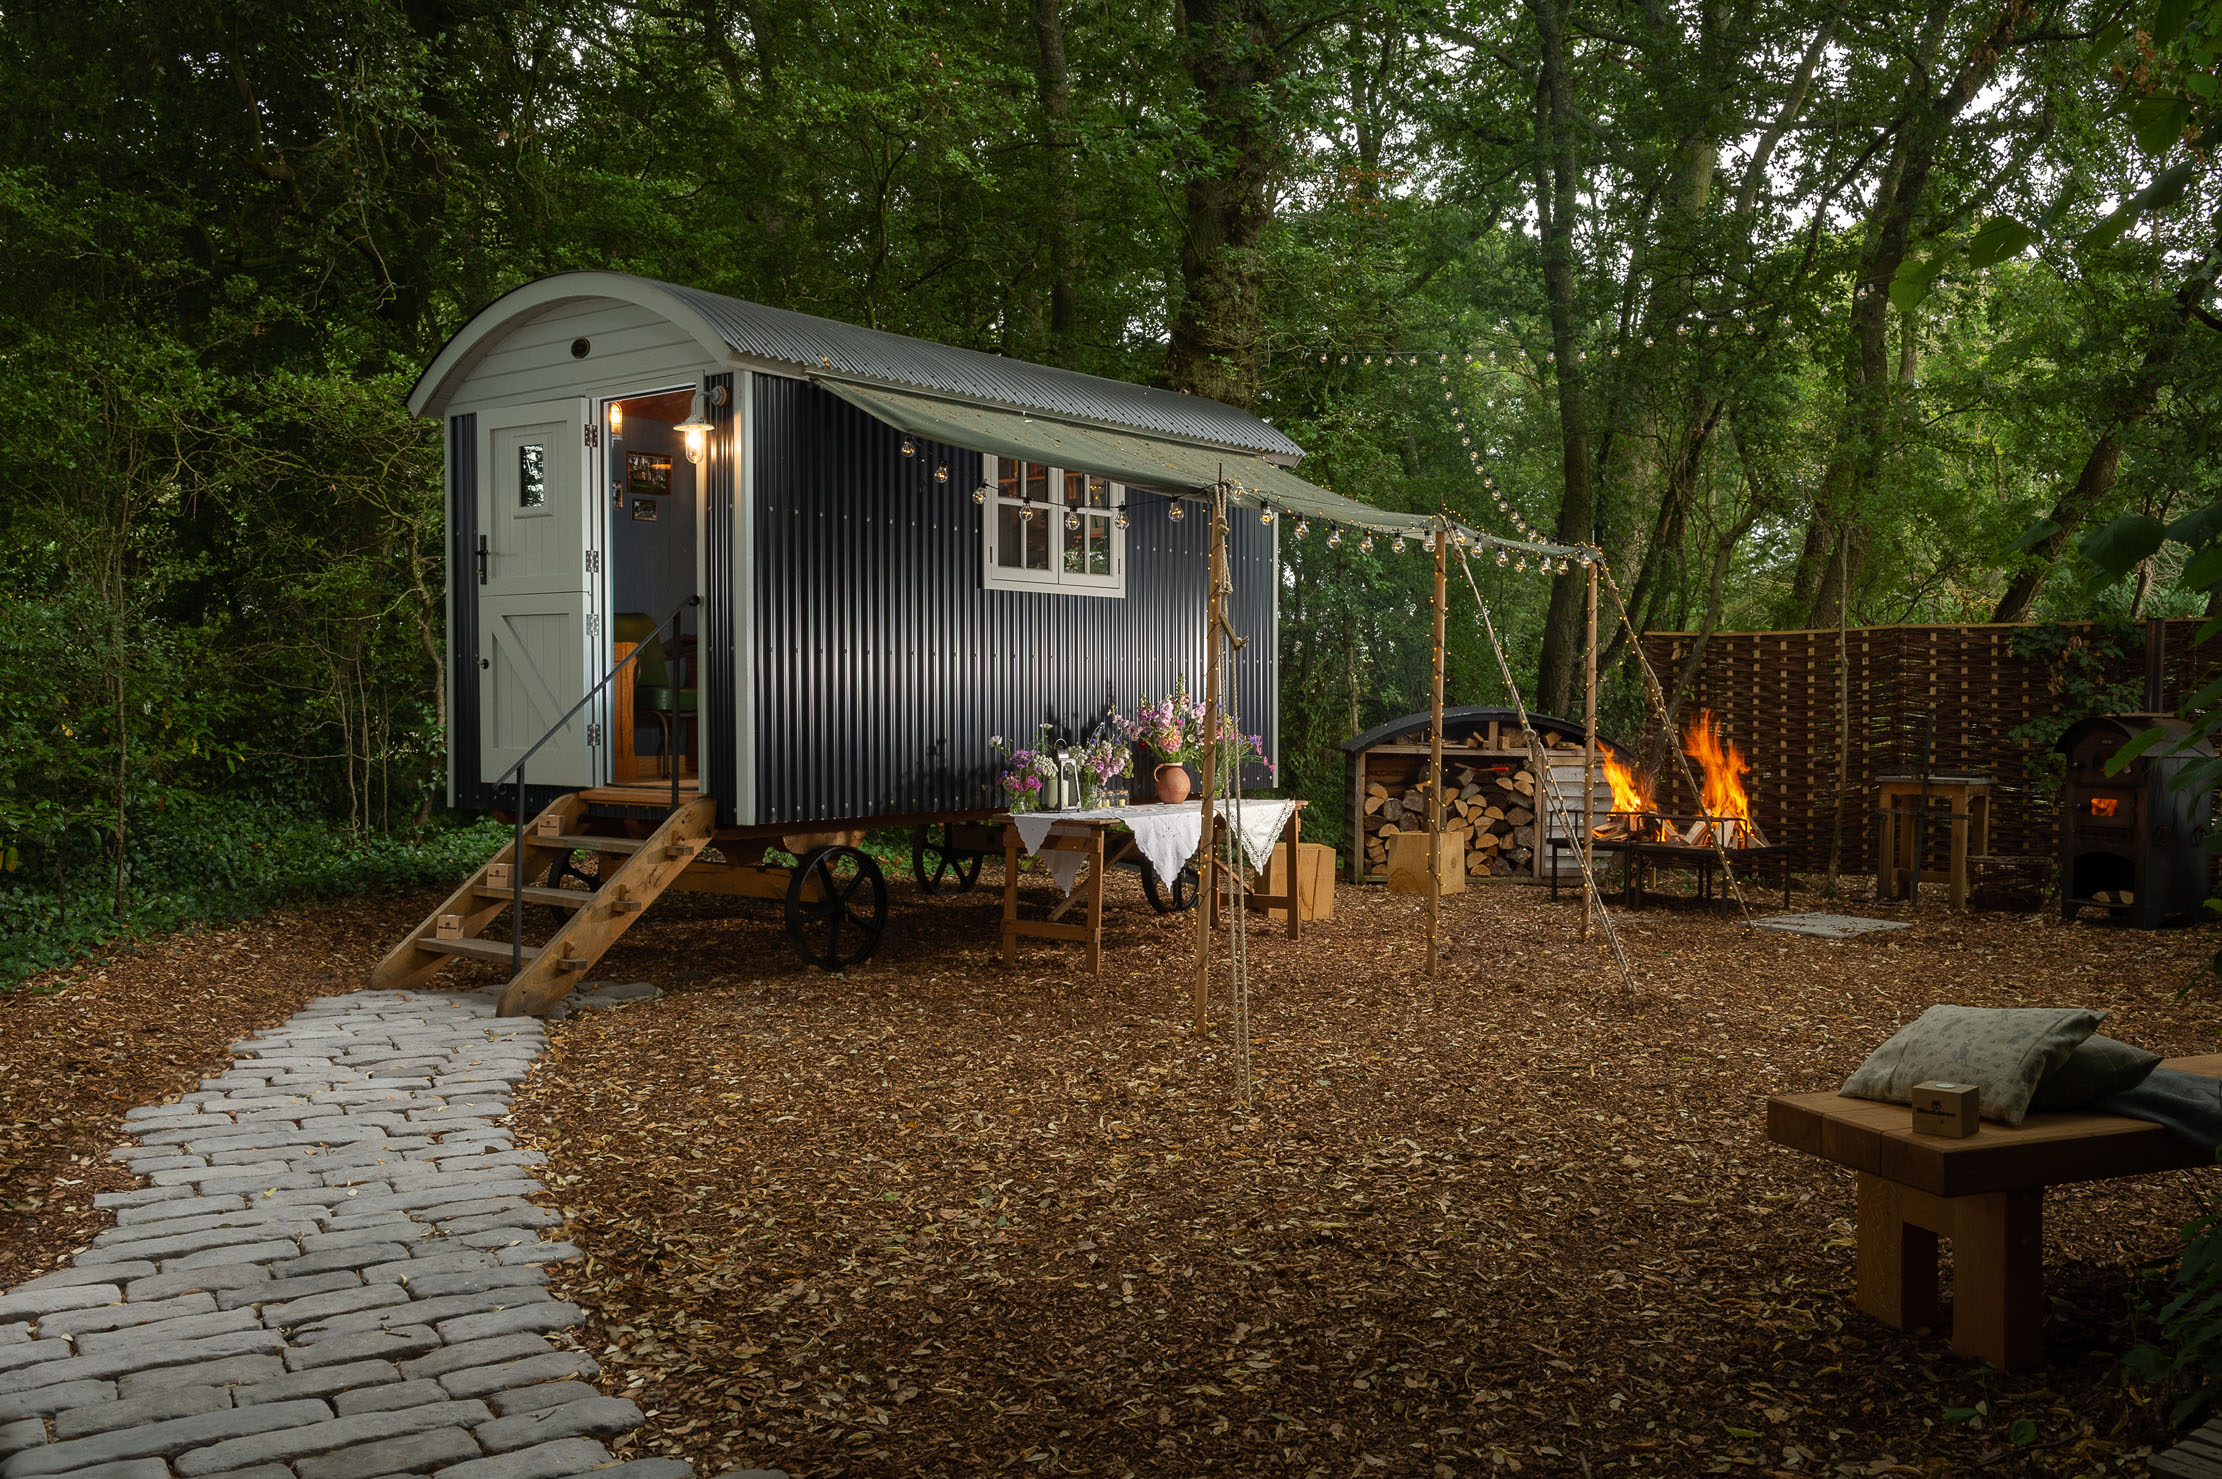 The best posh sheds, garden rooms and shepherd's huts for your garden - Country Life